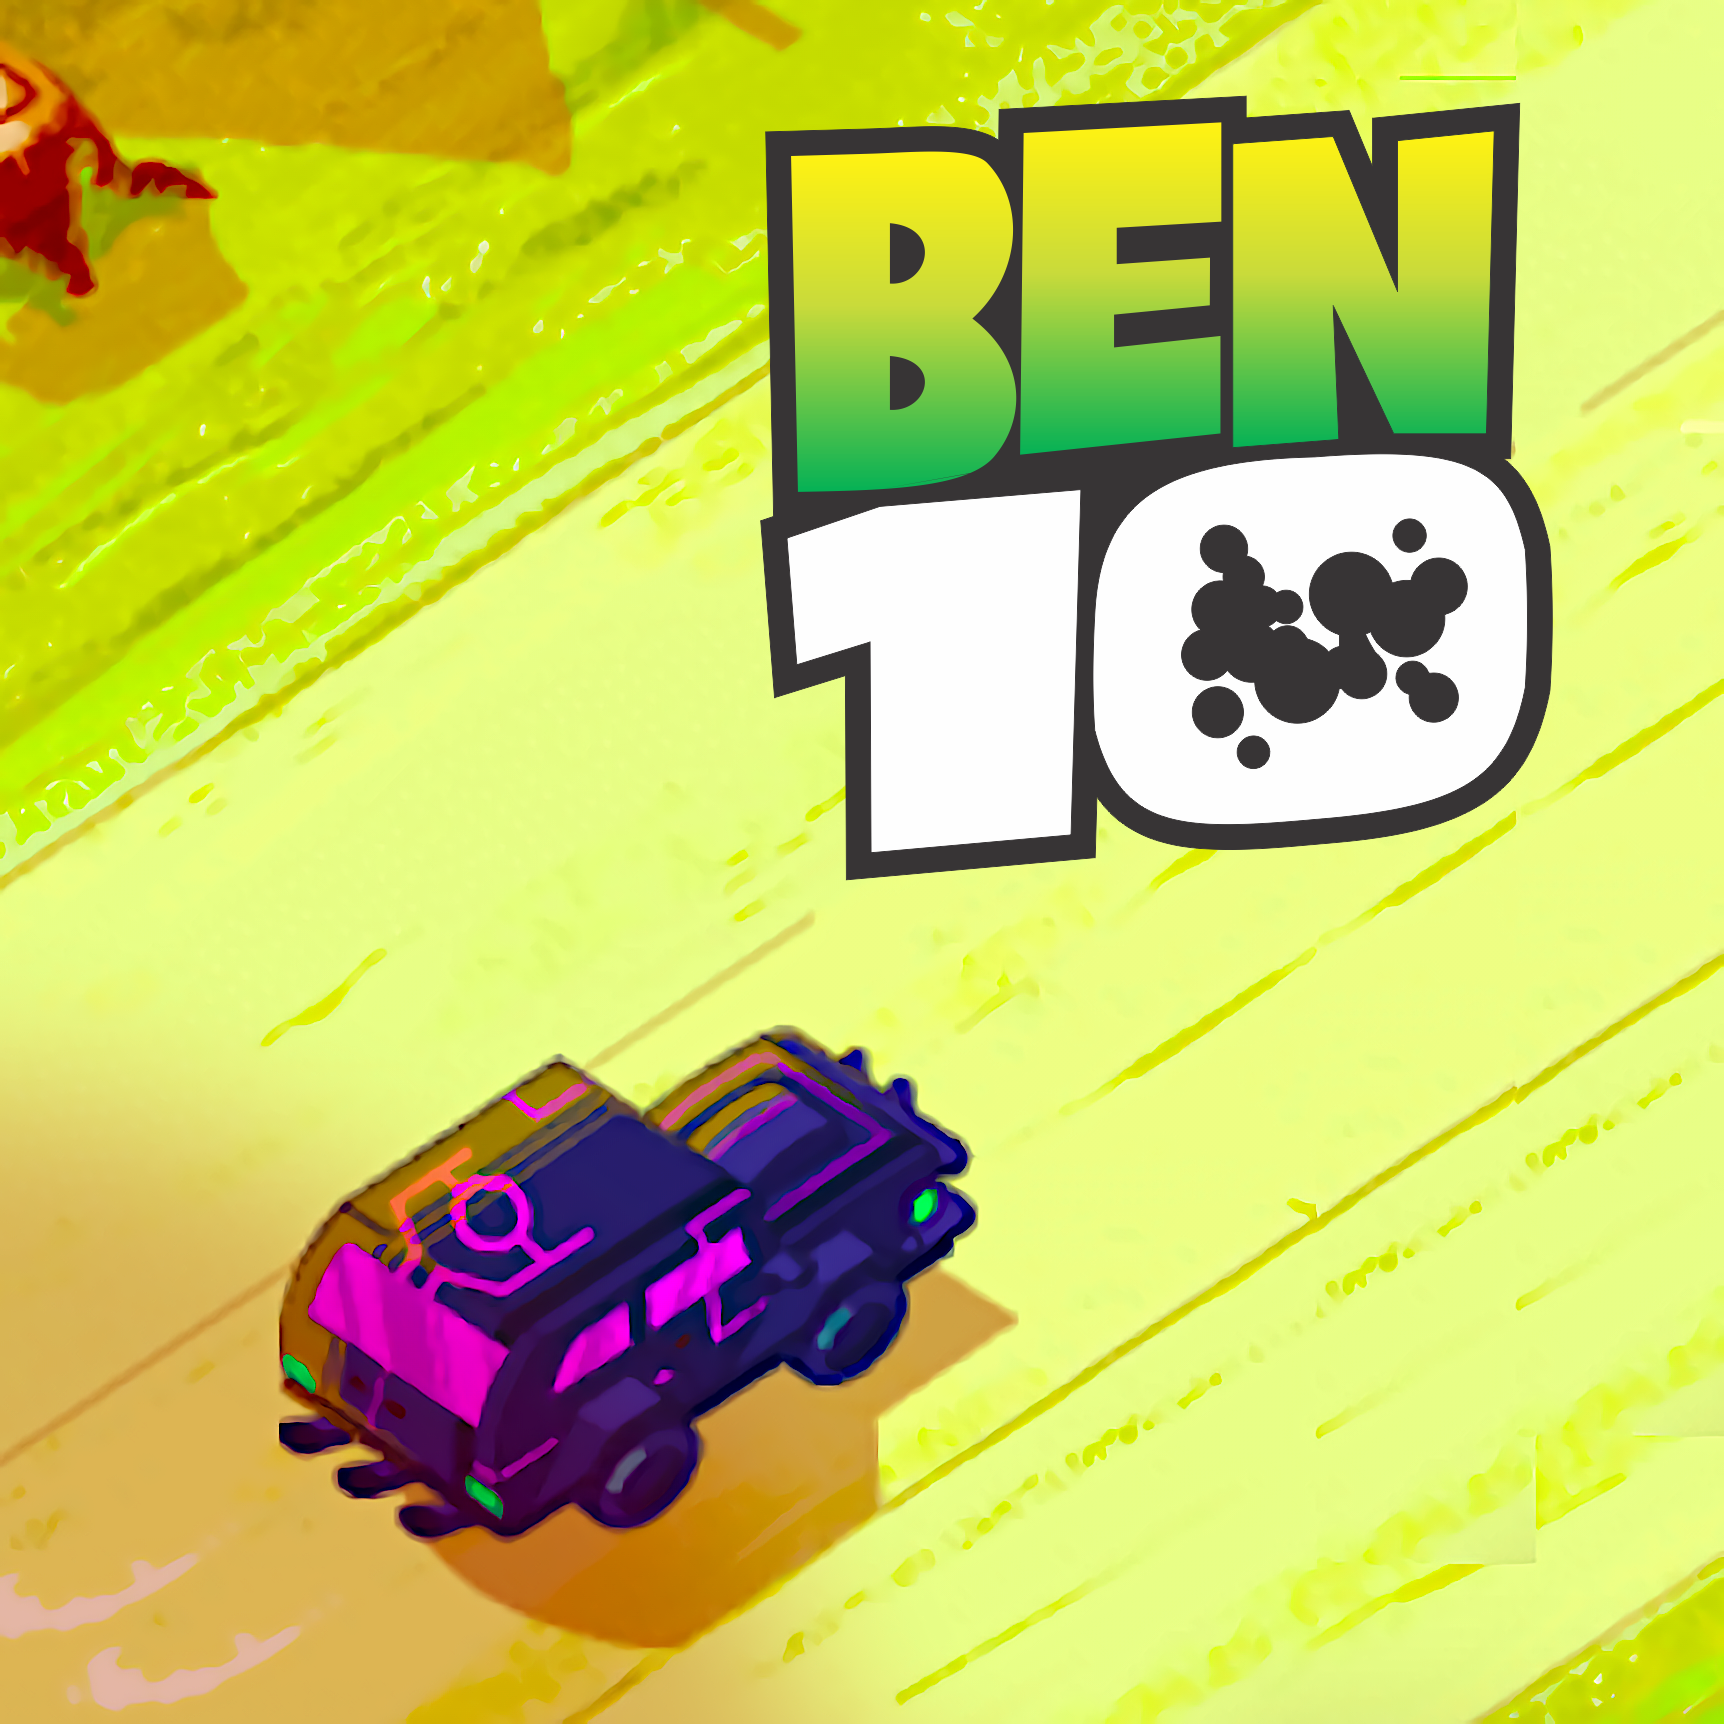 Upgrade Chasers - Ben 10